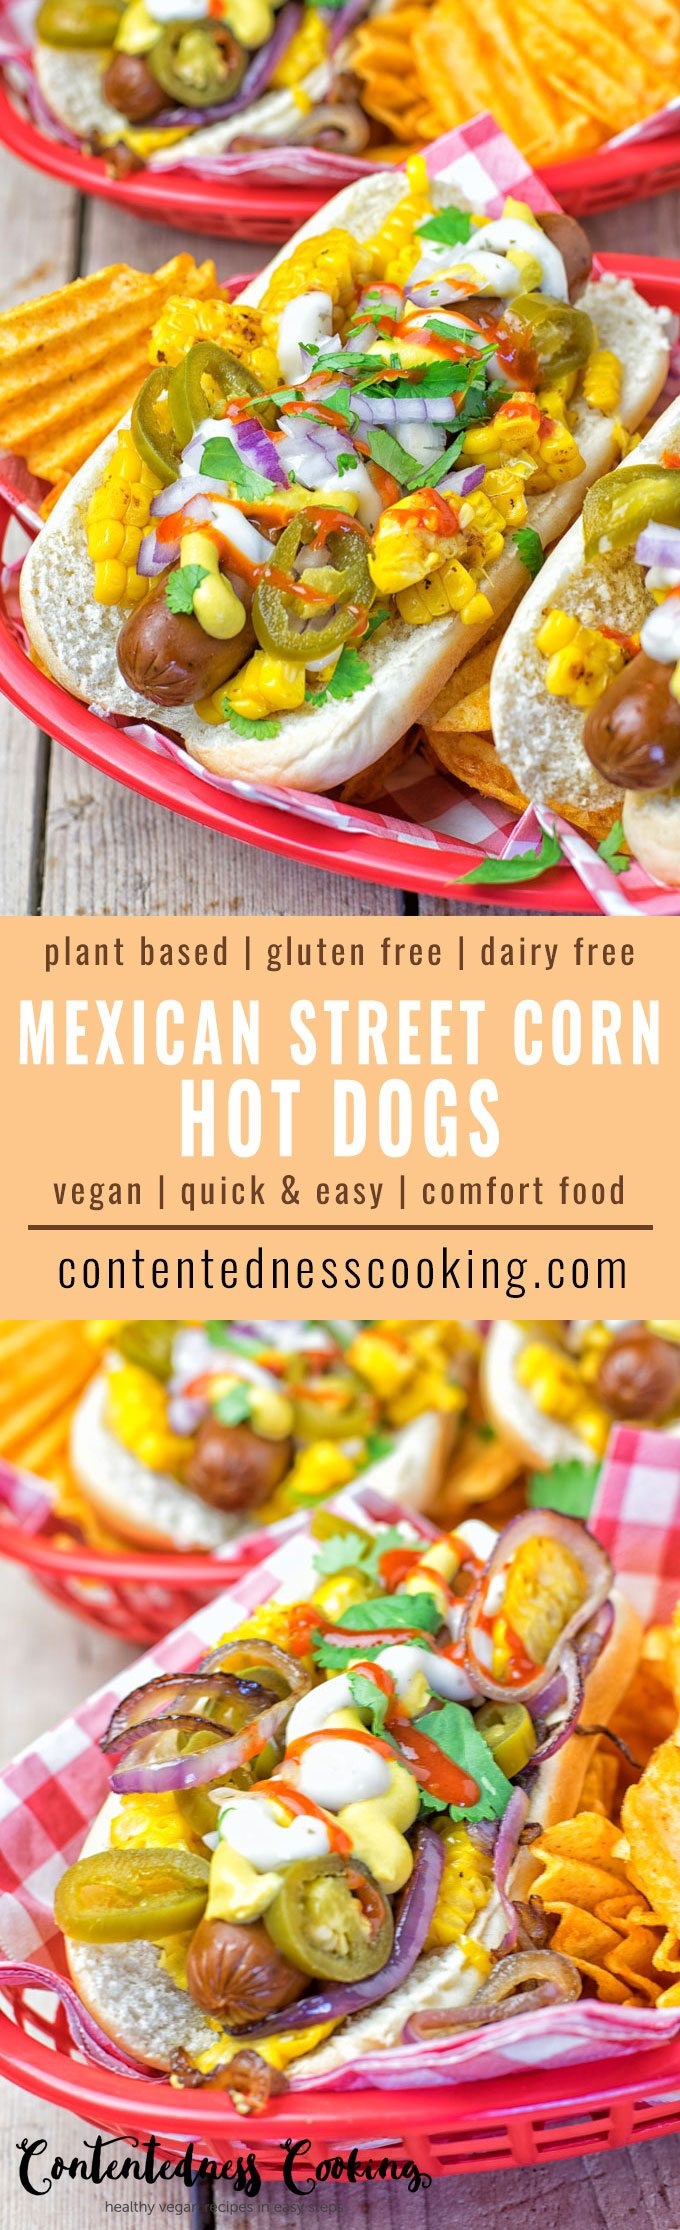 Mexican Street Corn Hot Dogs | #vegan #glutenfree #contentednesscooking #dairyfree #plantbased